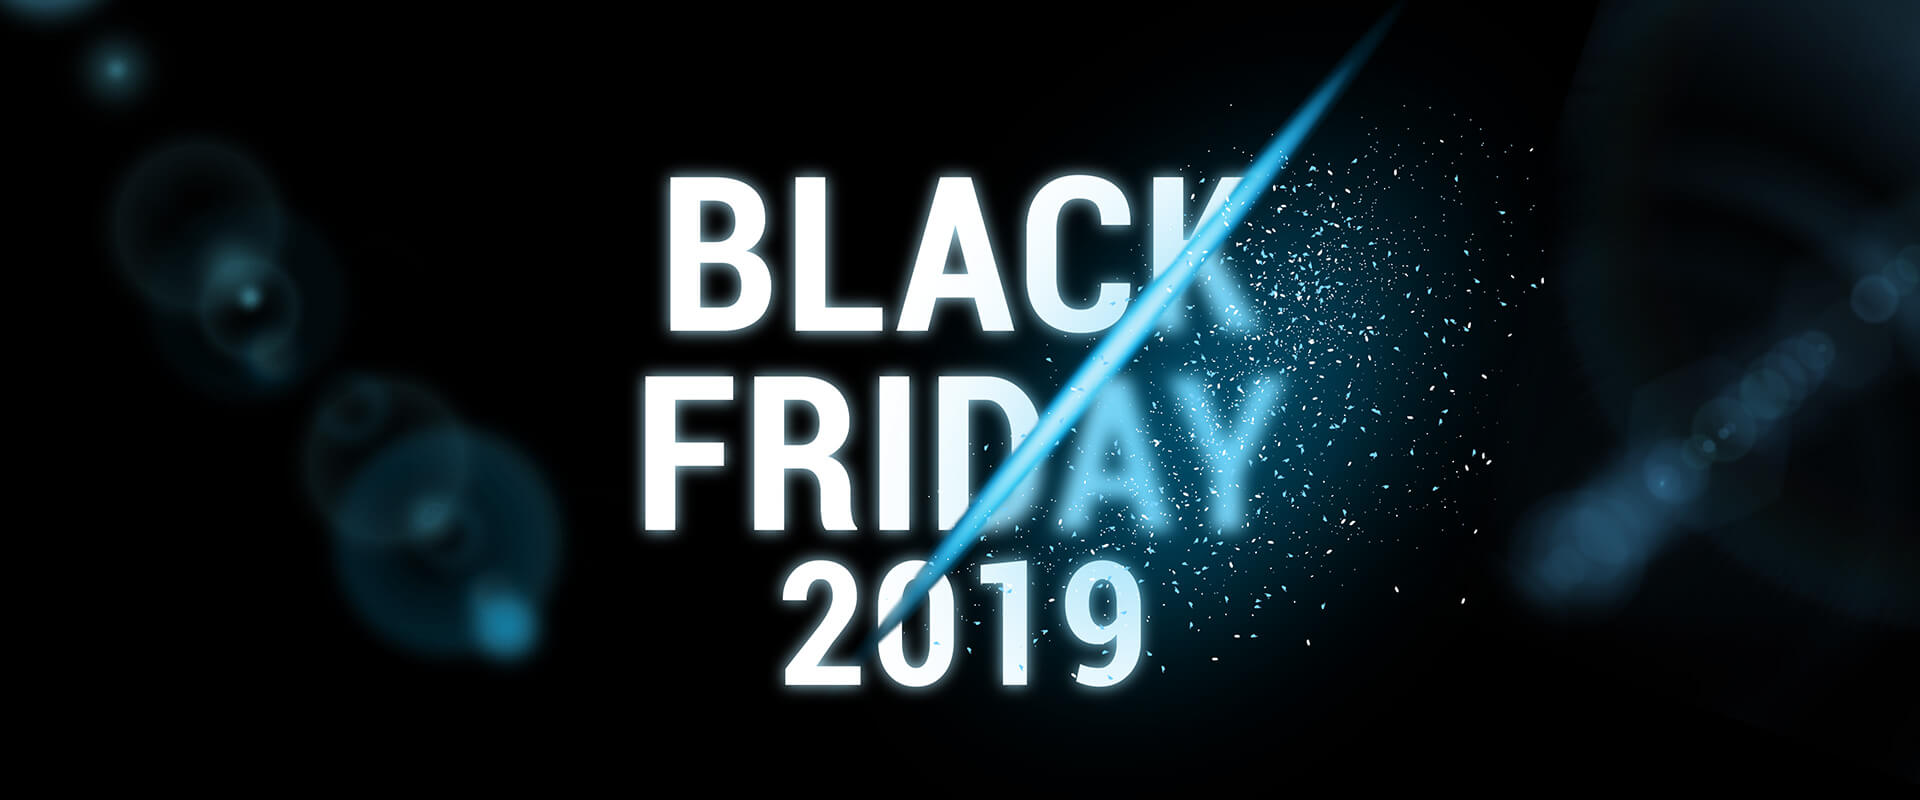 Sports shoes black friday banner